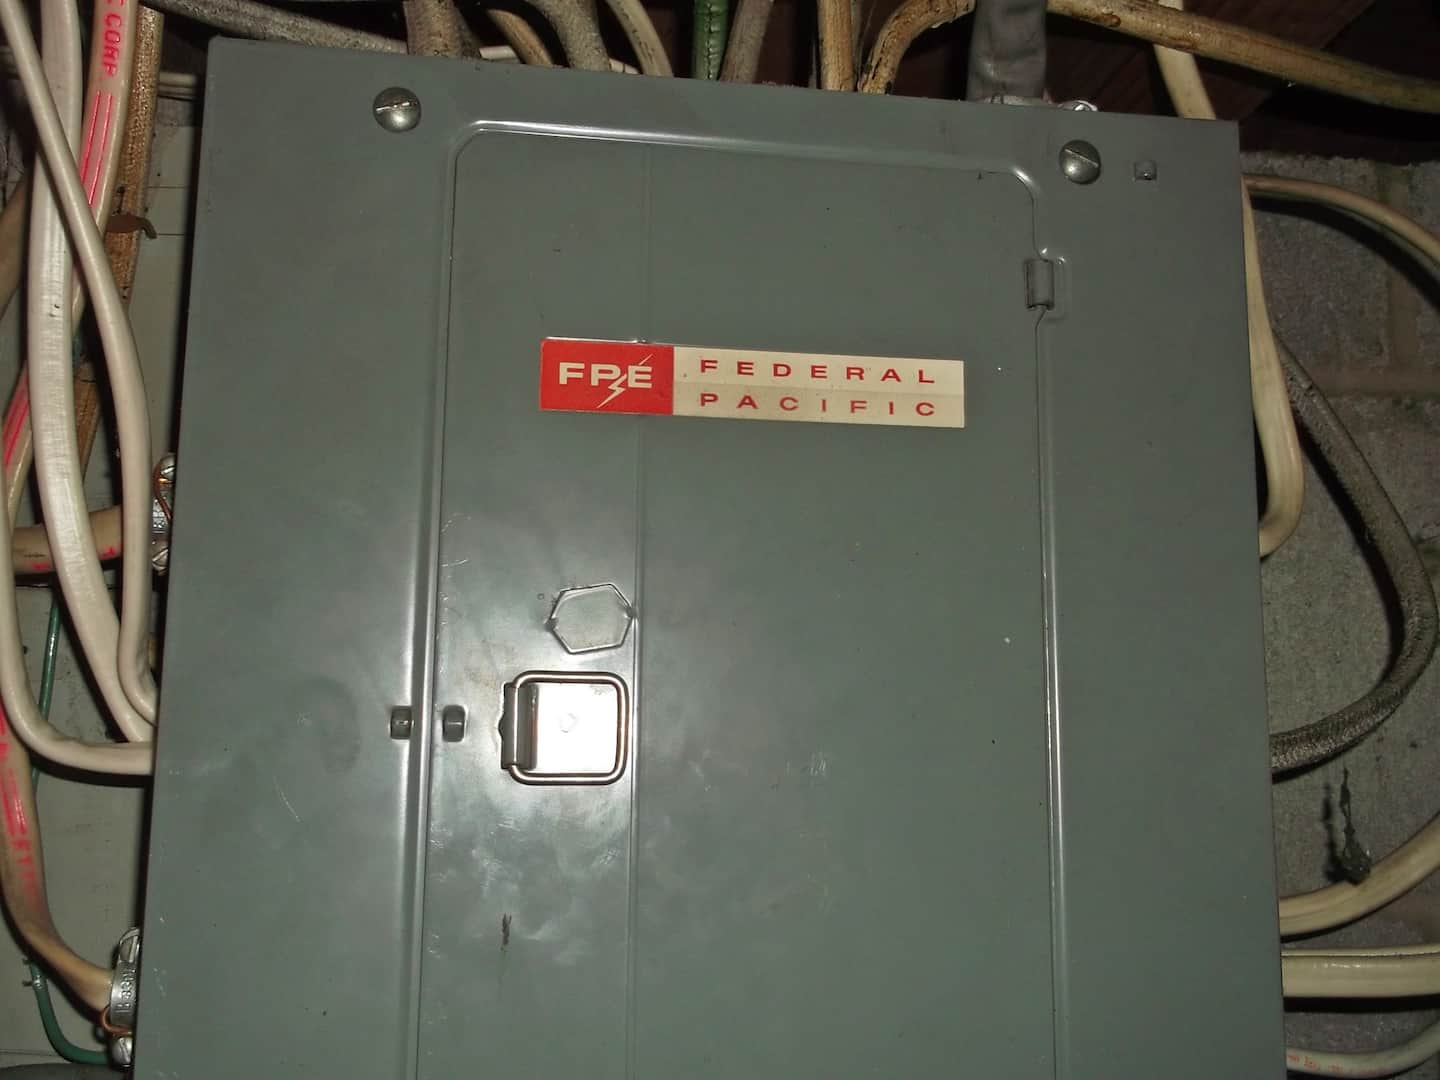 Are Federal Pacific Circuit Breaker Panels Safe Angies List Electrical Arc Fault Safety Advice For Homeowners Home Inspectors